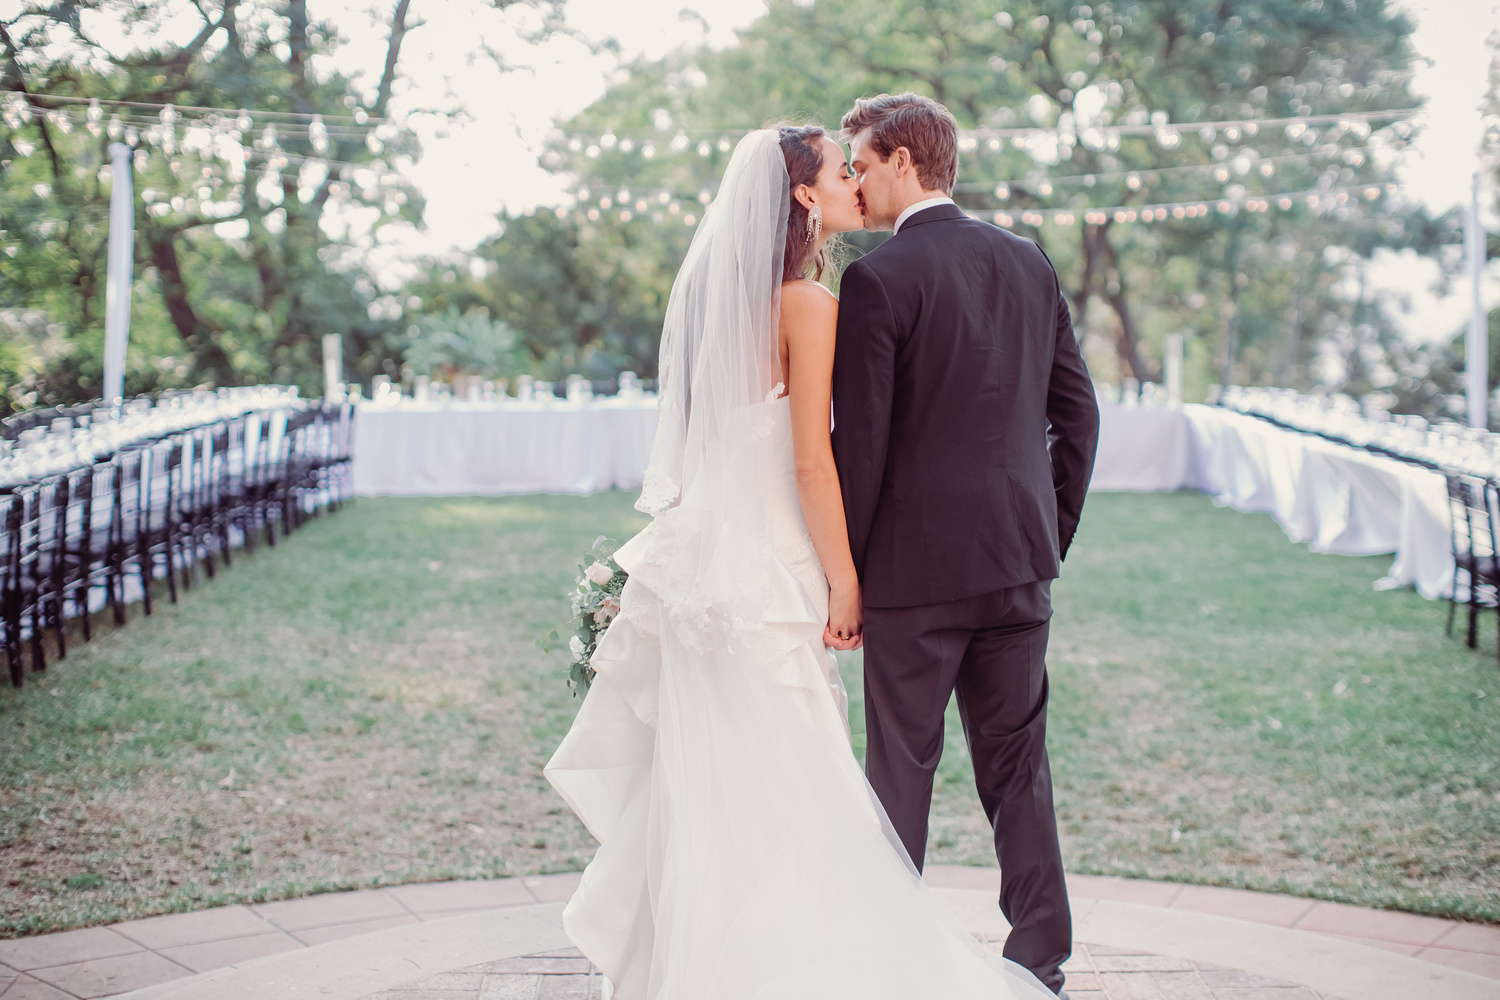 a wedding couple stands kissing in front of empty seats.